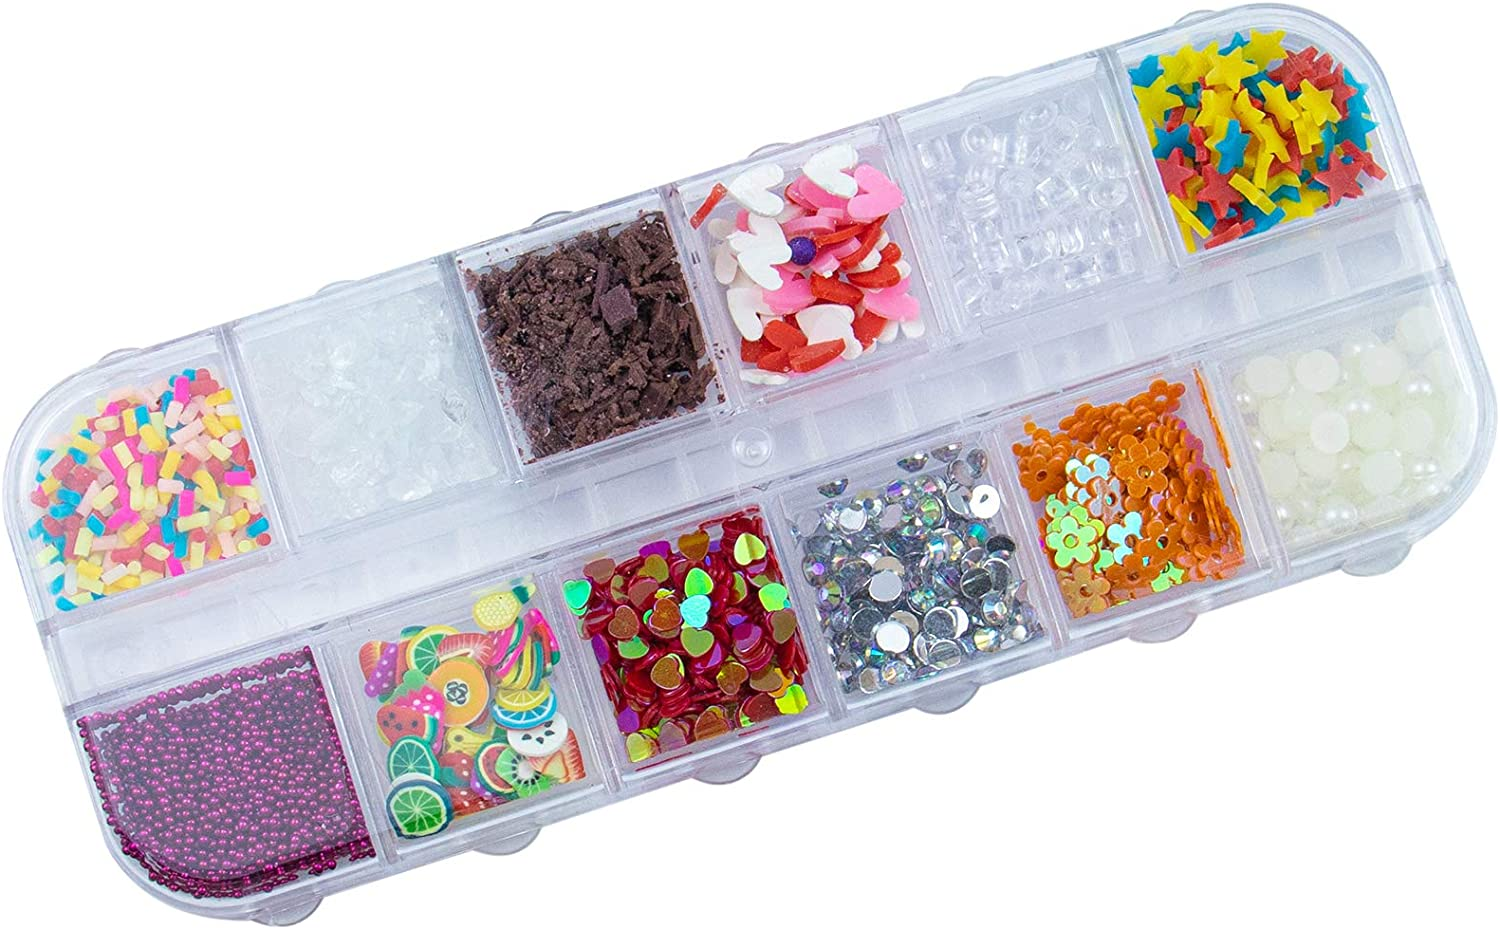 AUEAR, 12 Colors Fake Candy Sweets Sugar Chocolate Ice Sprinkles Decorations for Fake Cake Dessert Simulation Food Slime Kit DIY Crafts (Style B)